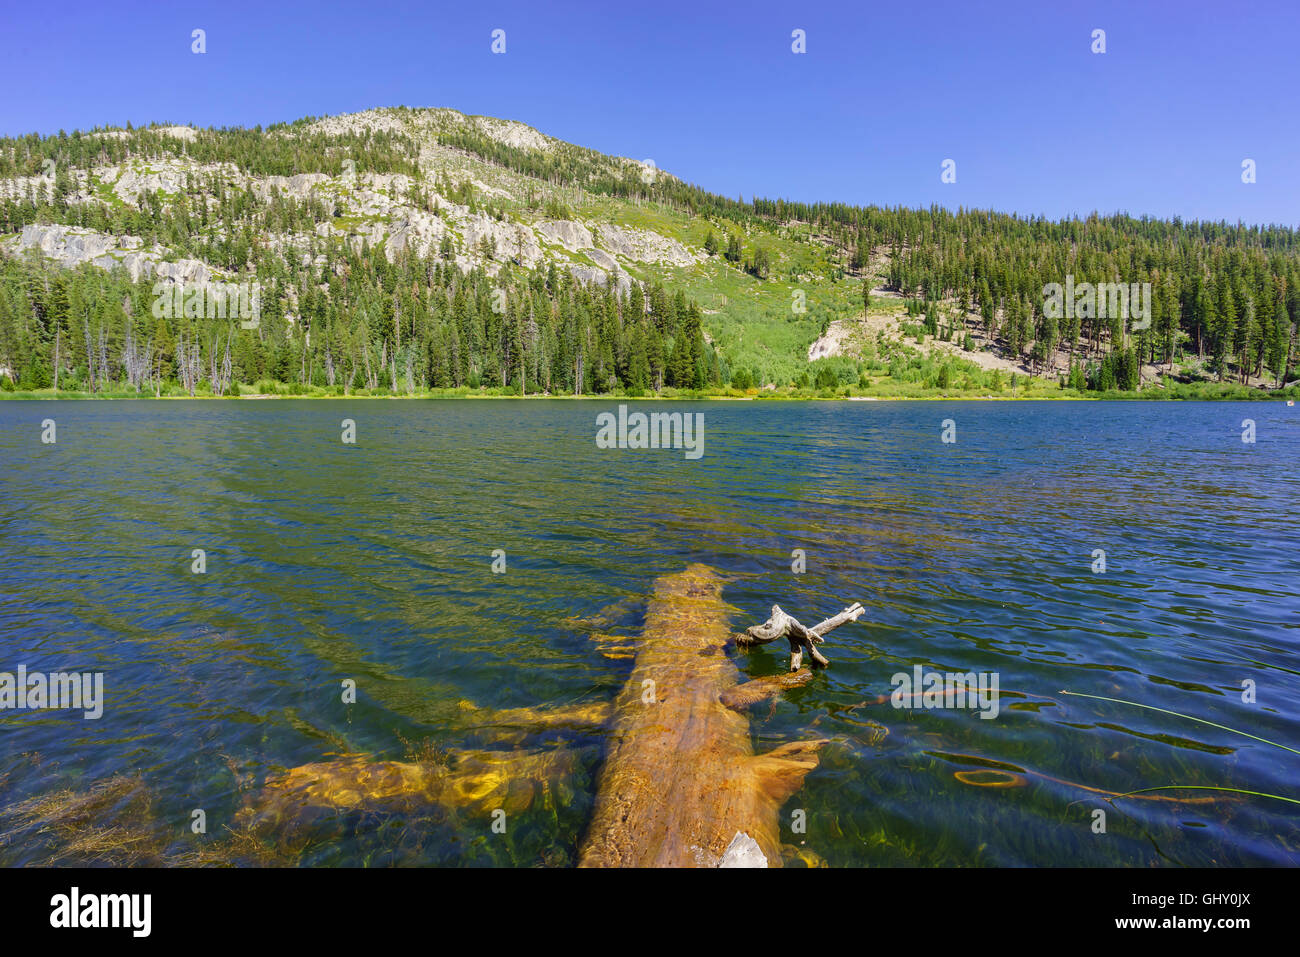 The beautiful Sotcher Lake in Devils Postpile National Monument - Stock Image